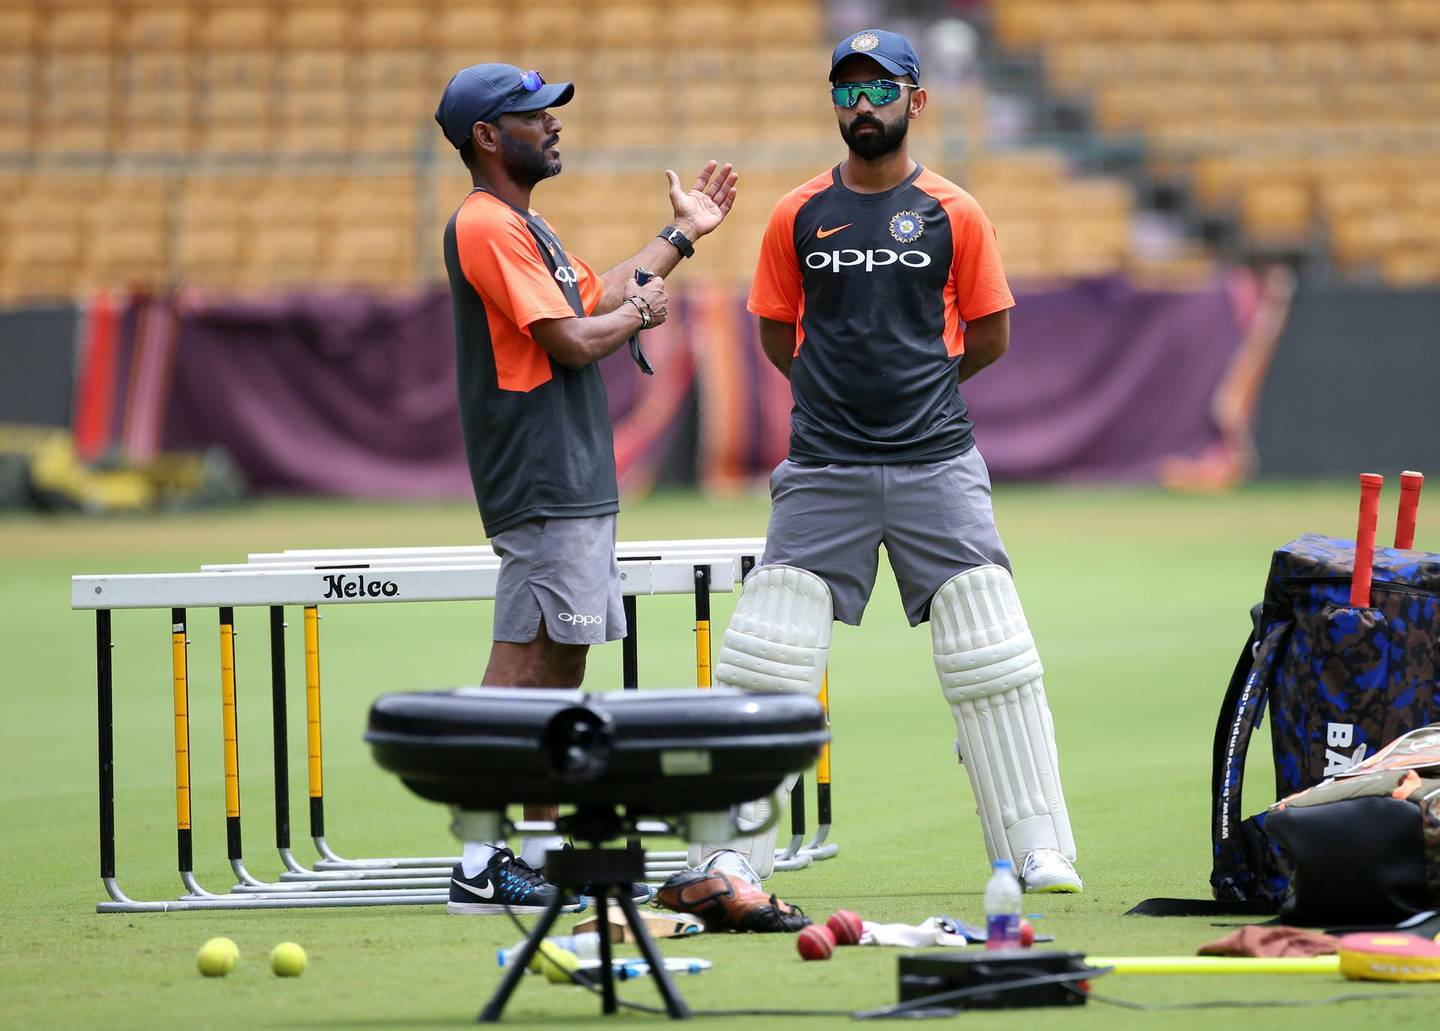 Indian cricket team captain Ajinkya Rahane, right, listens to fielding coach R. Sridhar during a training session ahead of one-off test match against Afghanistan in Bangalore, India, Wednesday, June 13, 2018. (AP Photo/Aijaz Rahi)